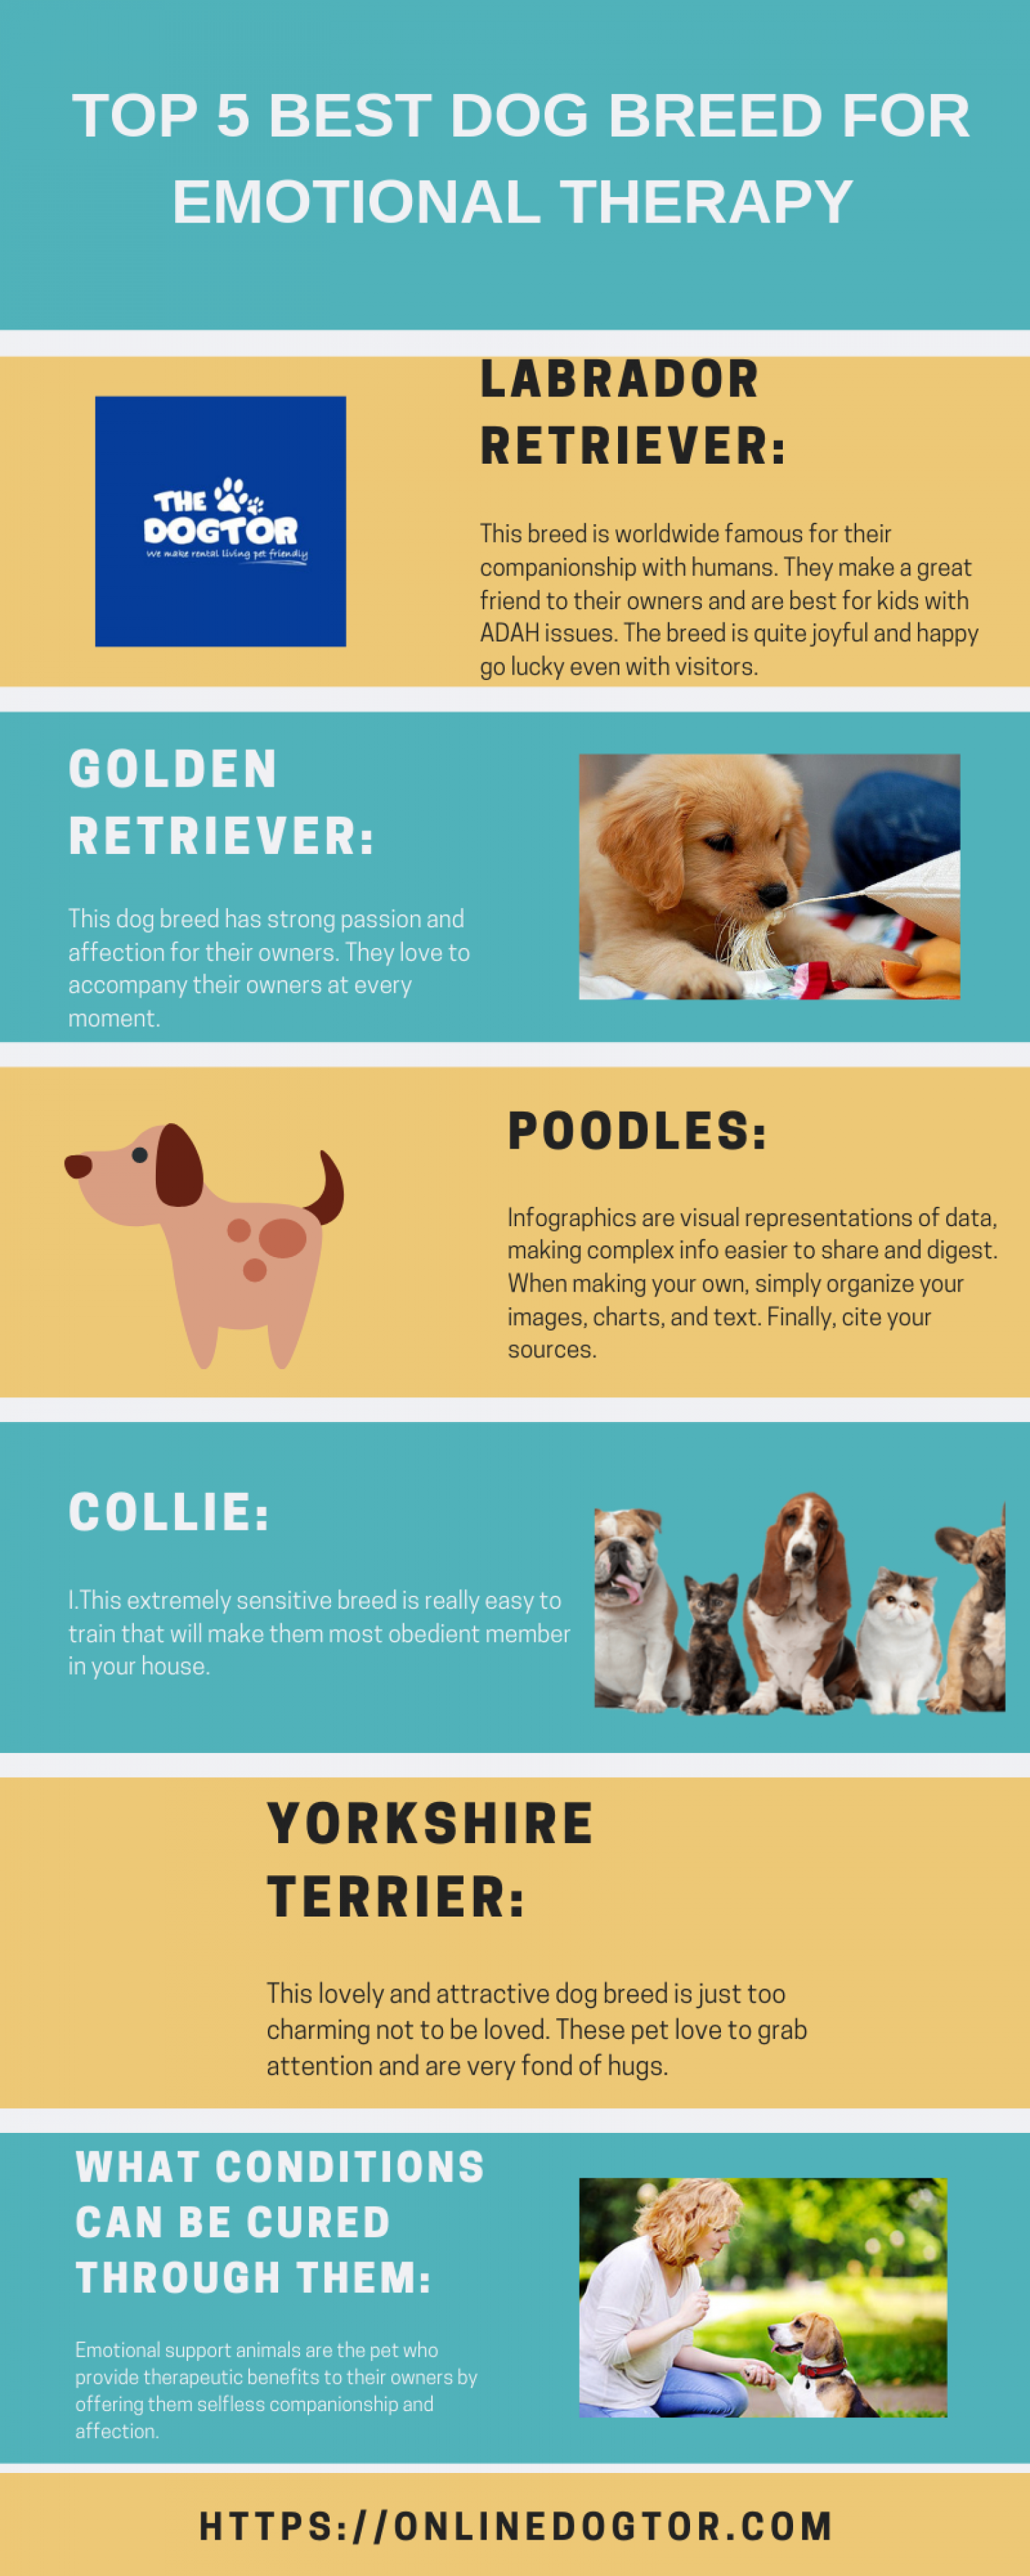 TOP 5 DOG BREED FOR EMOTIONAL THERAPY Infographic